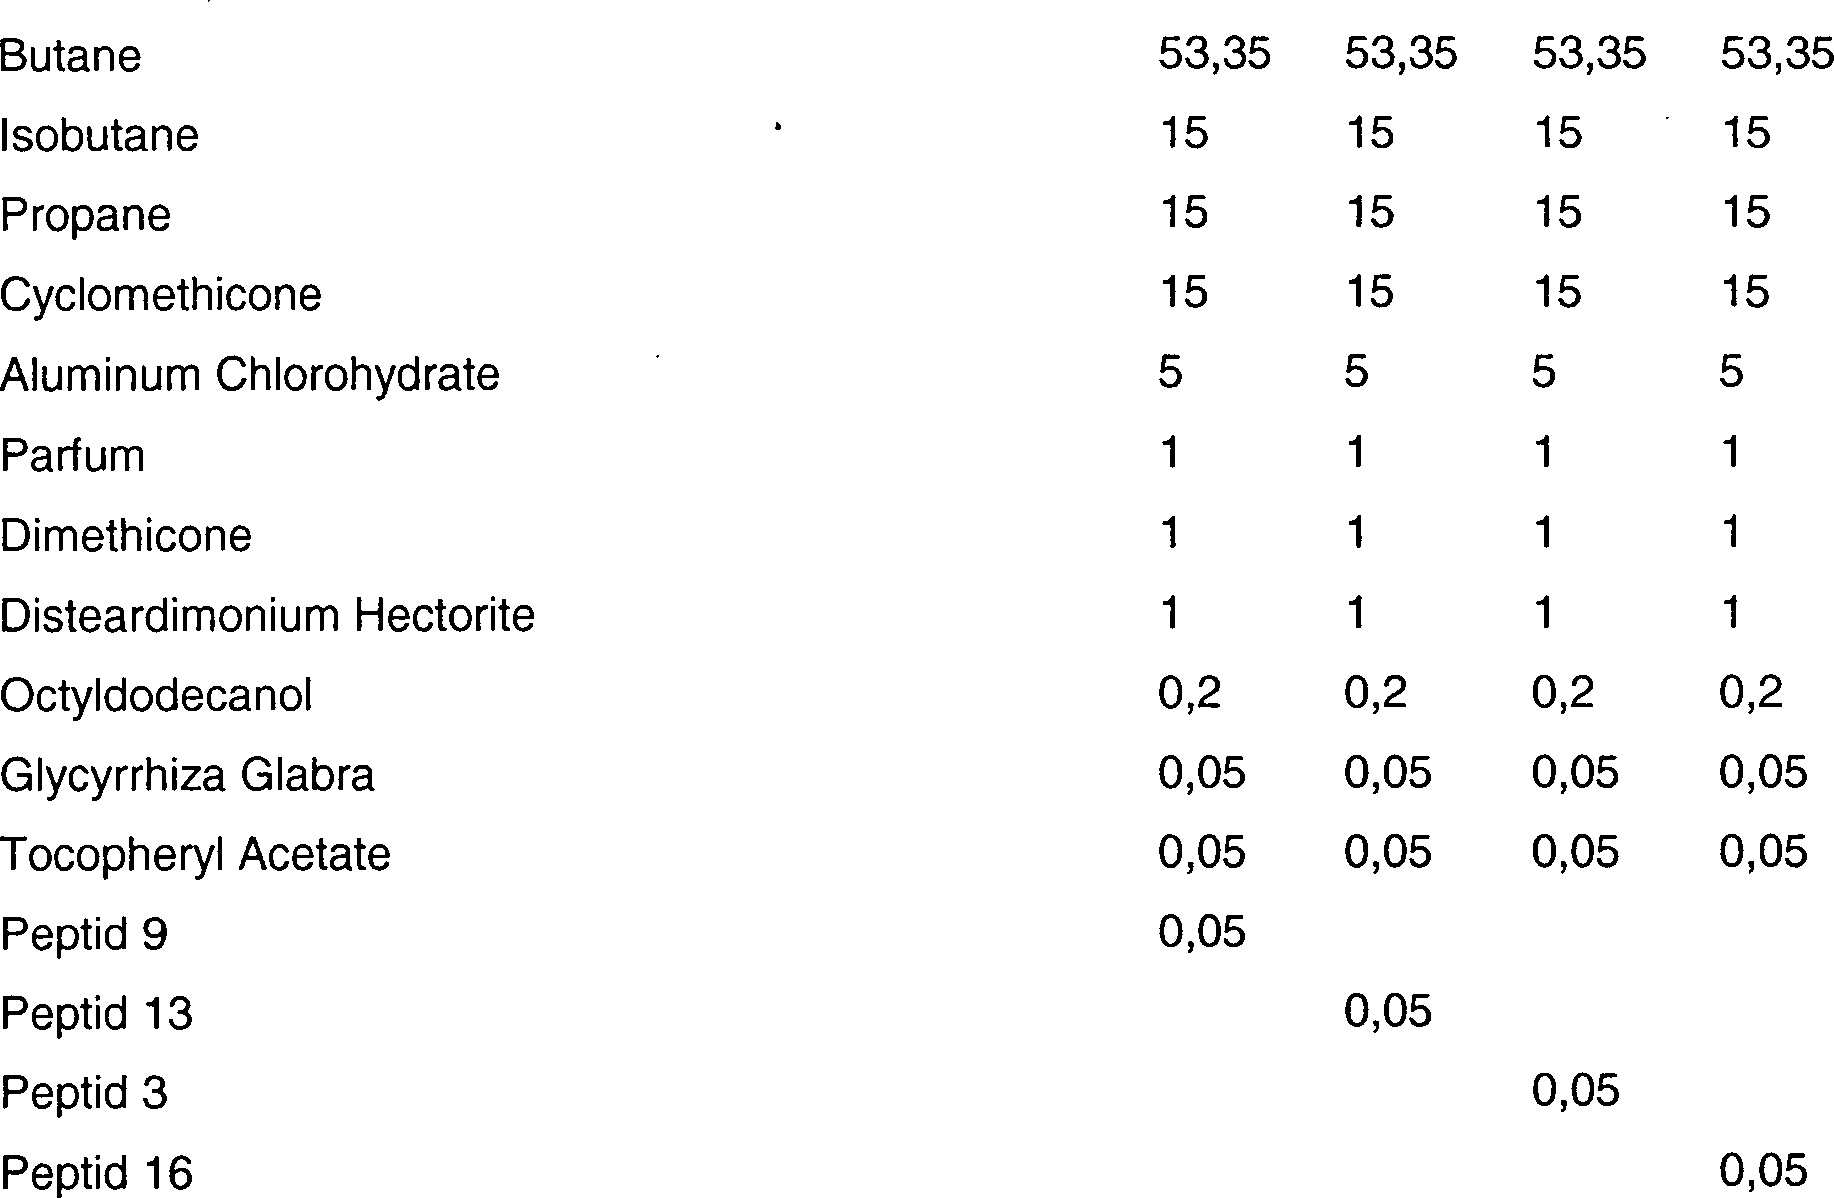 De102006011883a1 Tropolone And Substituted Hydroxybenzene